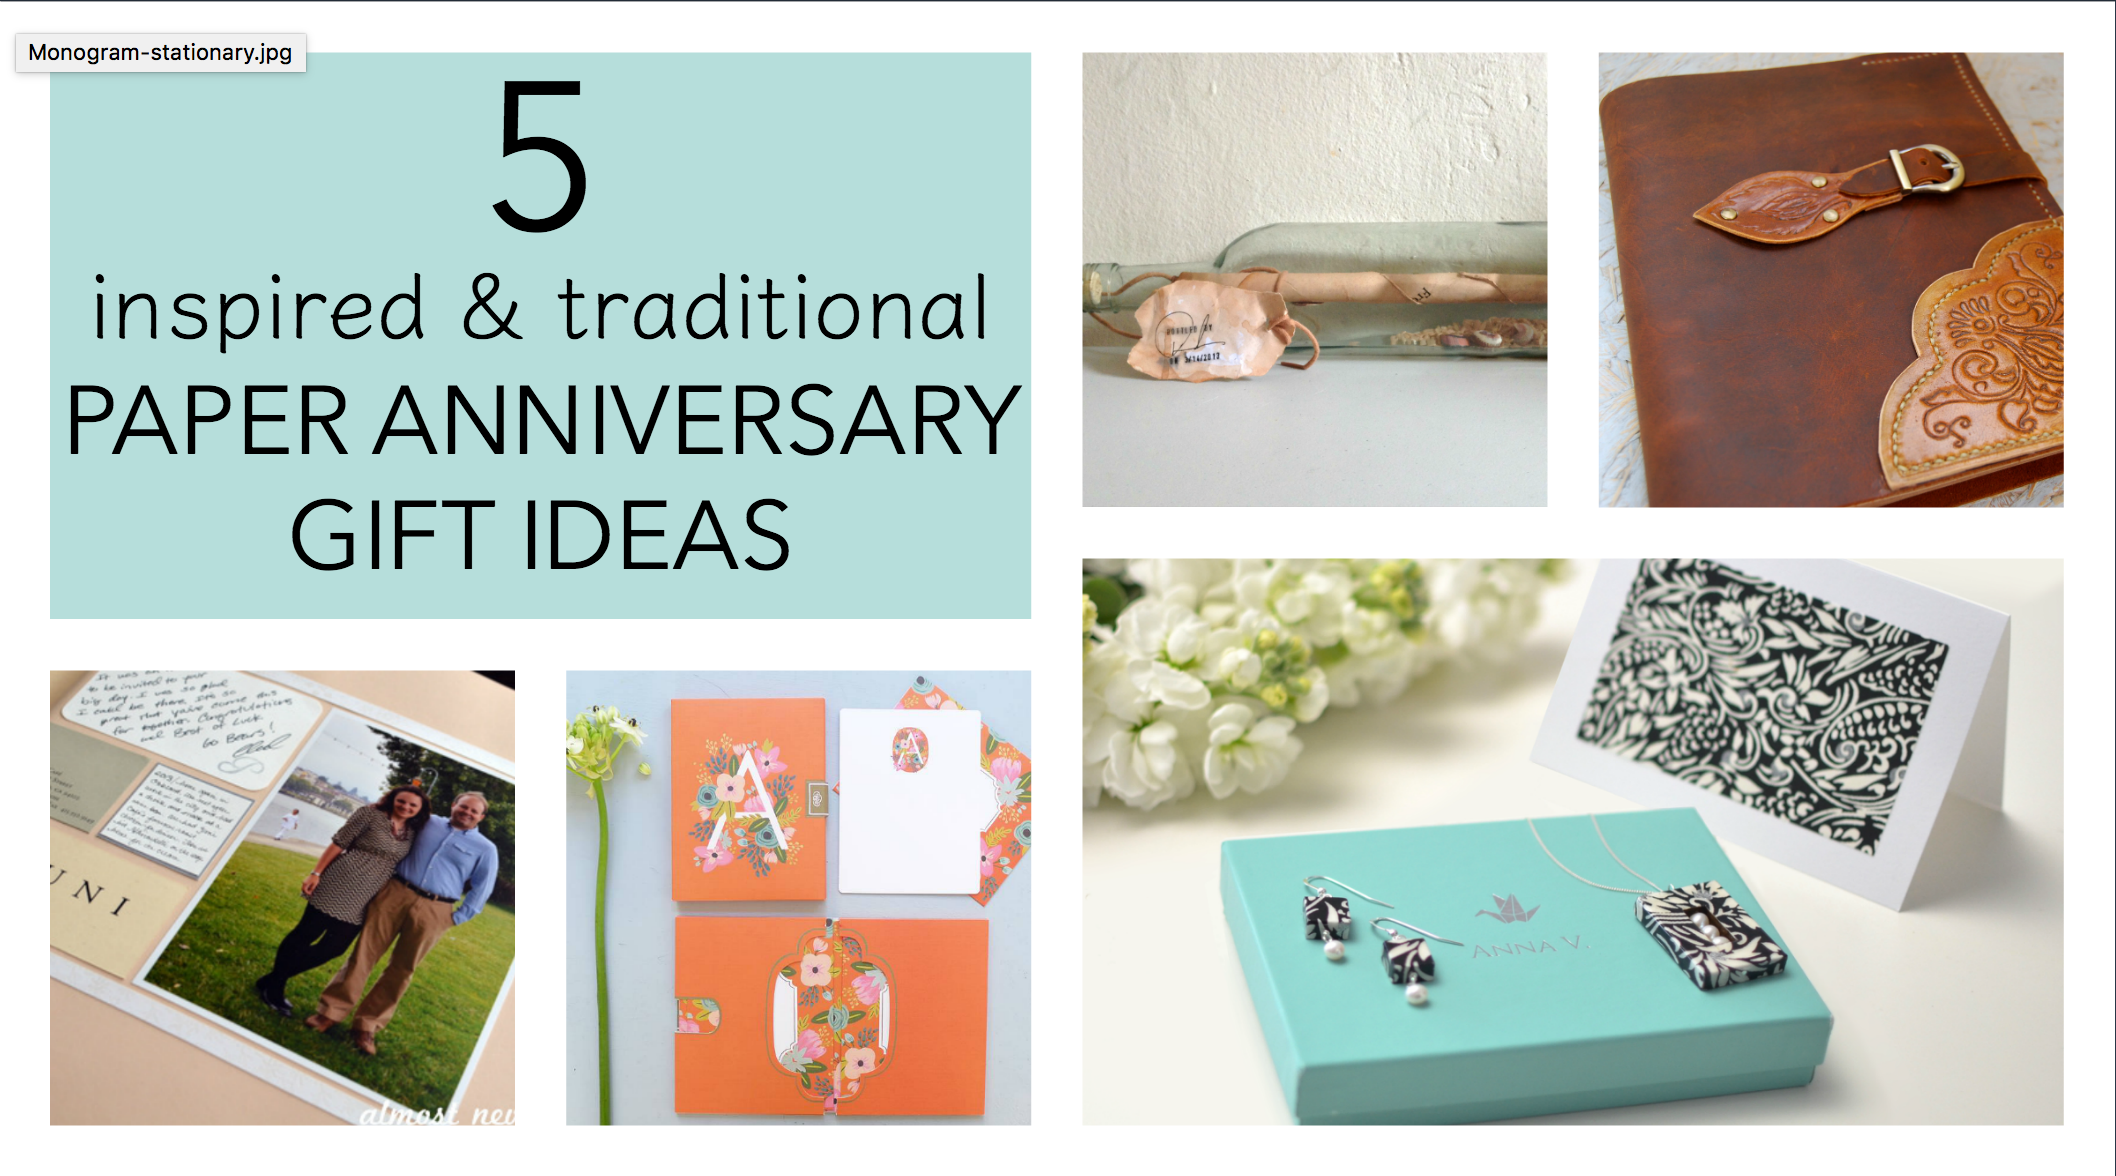 First Wedding Anniversary Gift Ideas South Africa : Ideas Traditional 1st Wedding Anniversary Gifts wedding anniversary ...